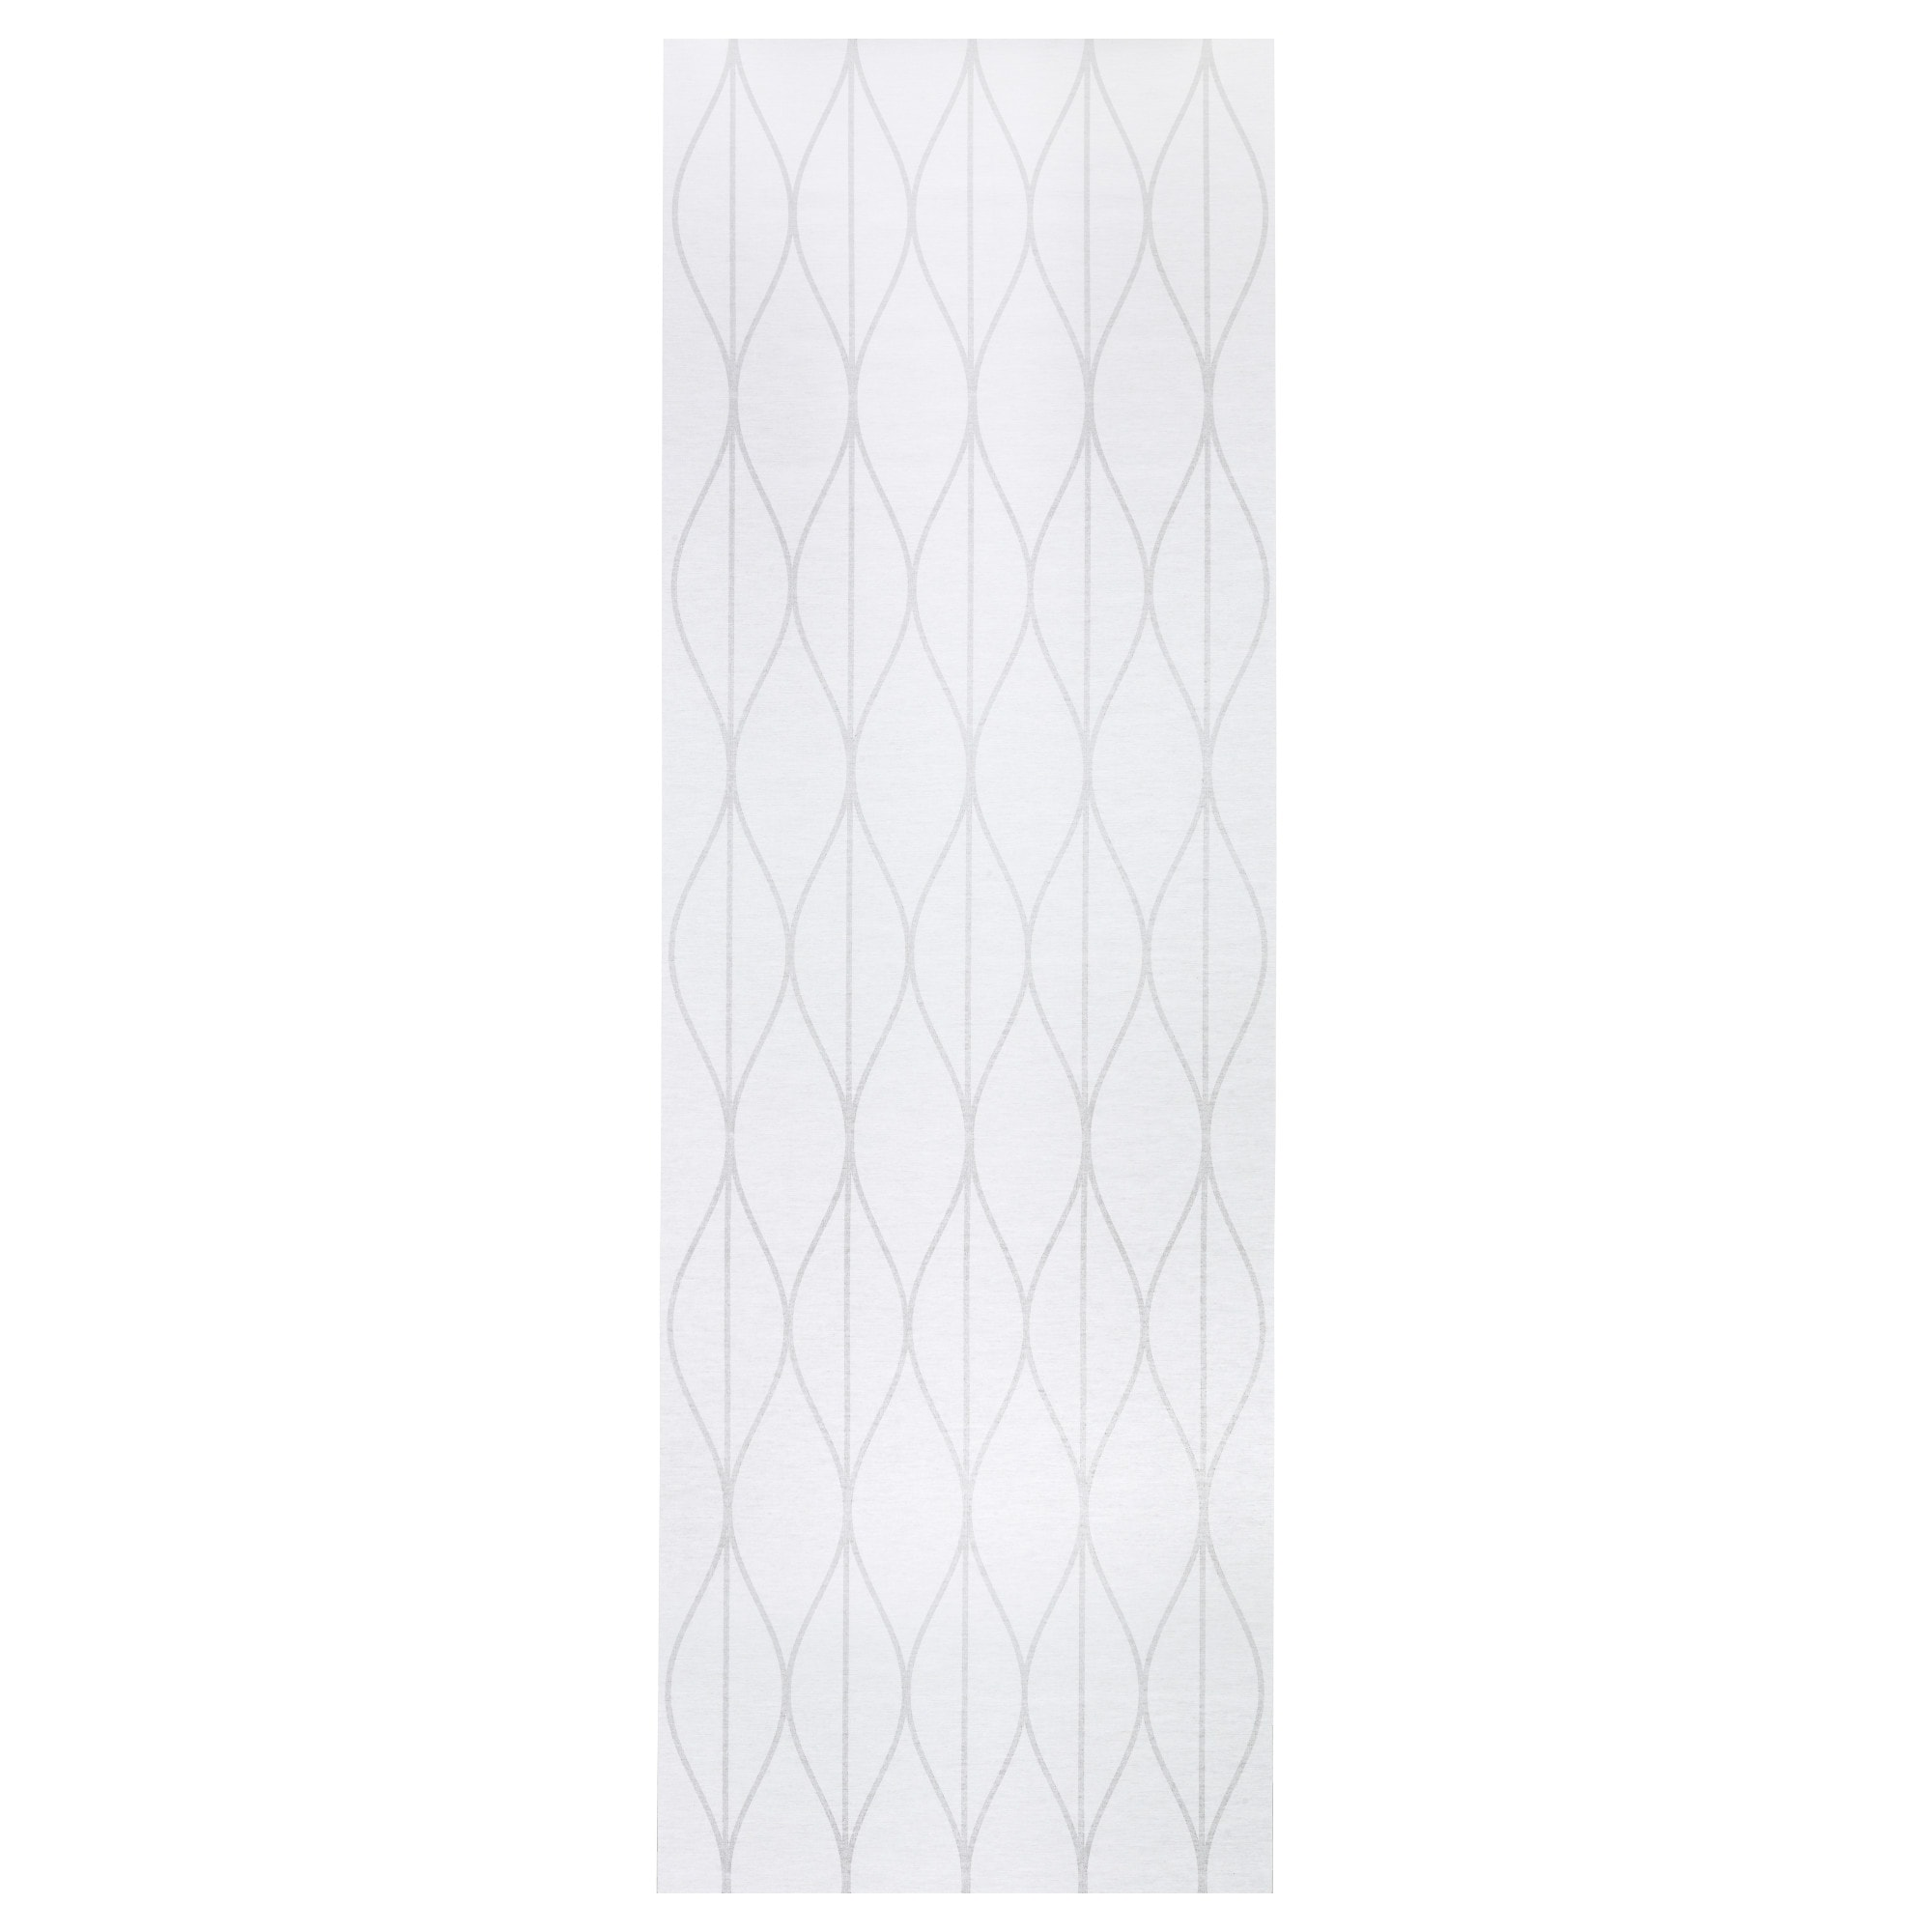 Ikea white curtains with red pattern - Grynet Panel Curtain White Length 118 Width 24 Weight 1